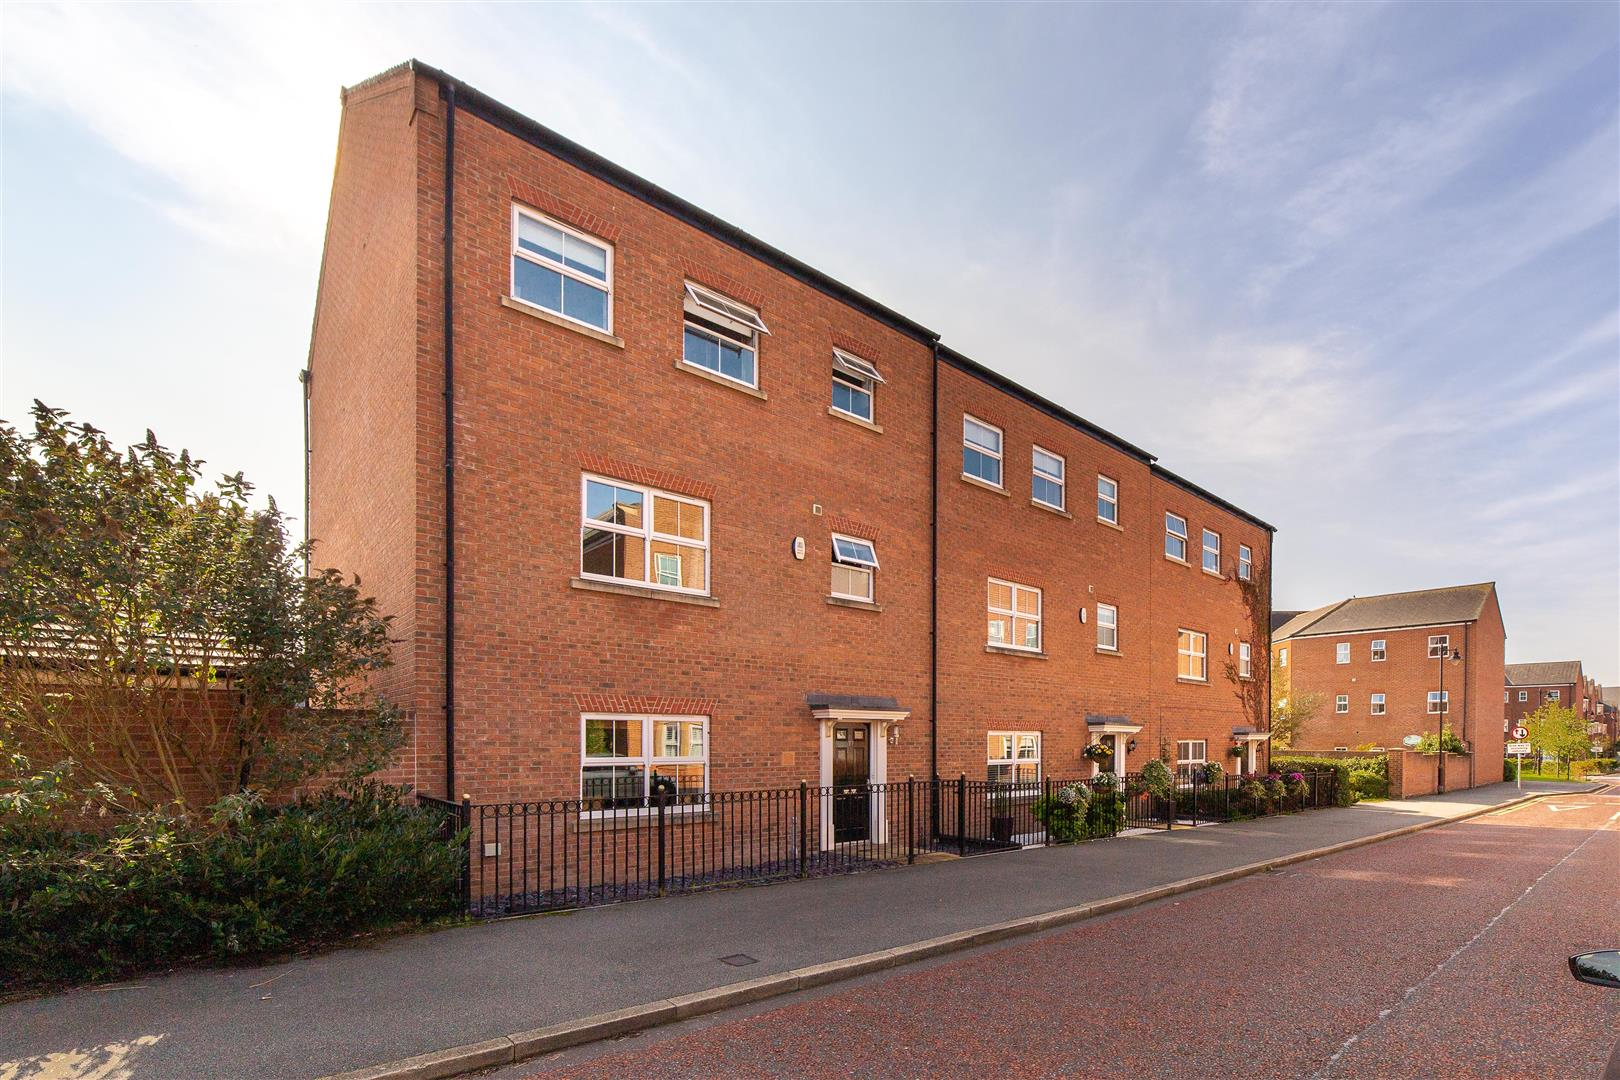 4 bed town house for sale in Newcastle Upon Tyne, NE3 5RF - Property Image 1